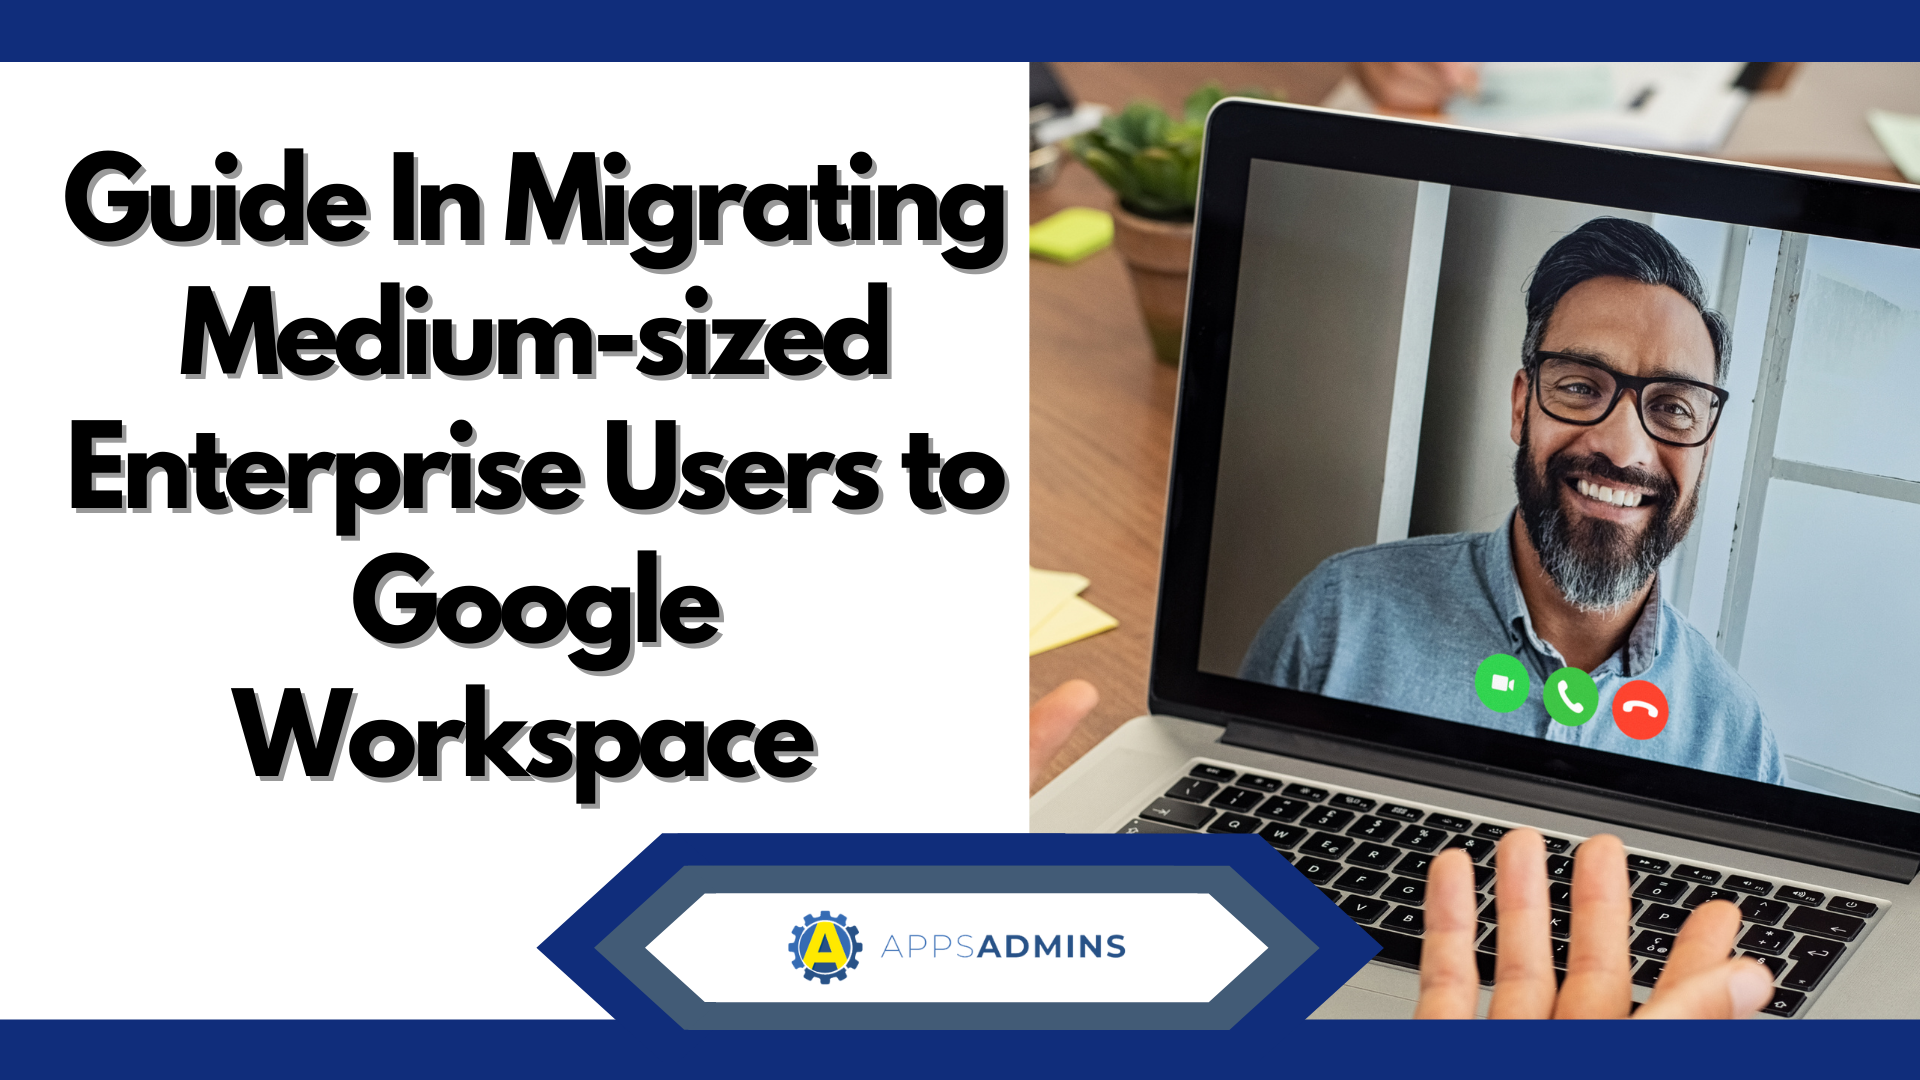 Guide In Migrating Medium-sized EnterpriseUsers to Google Workspace